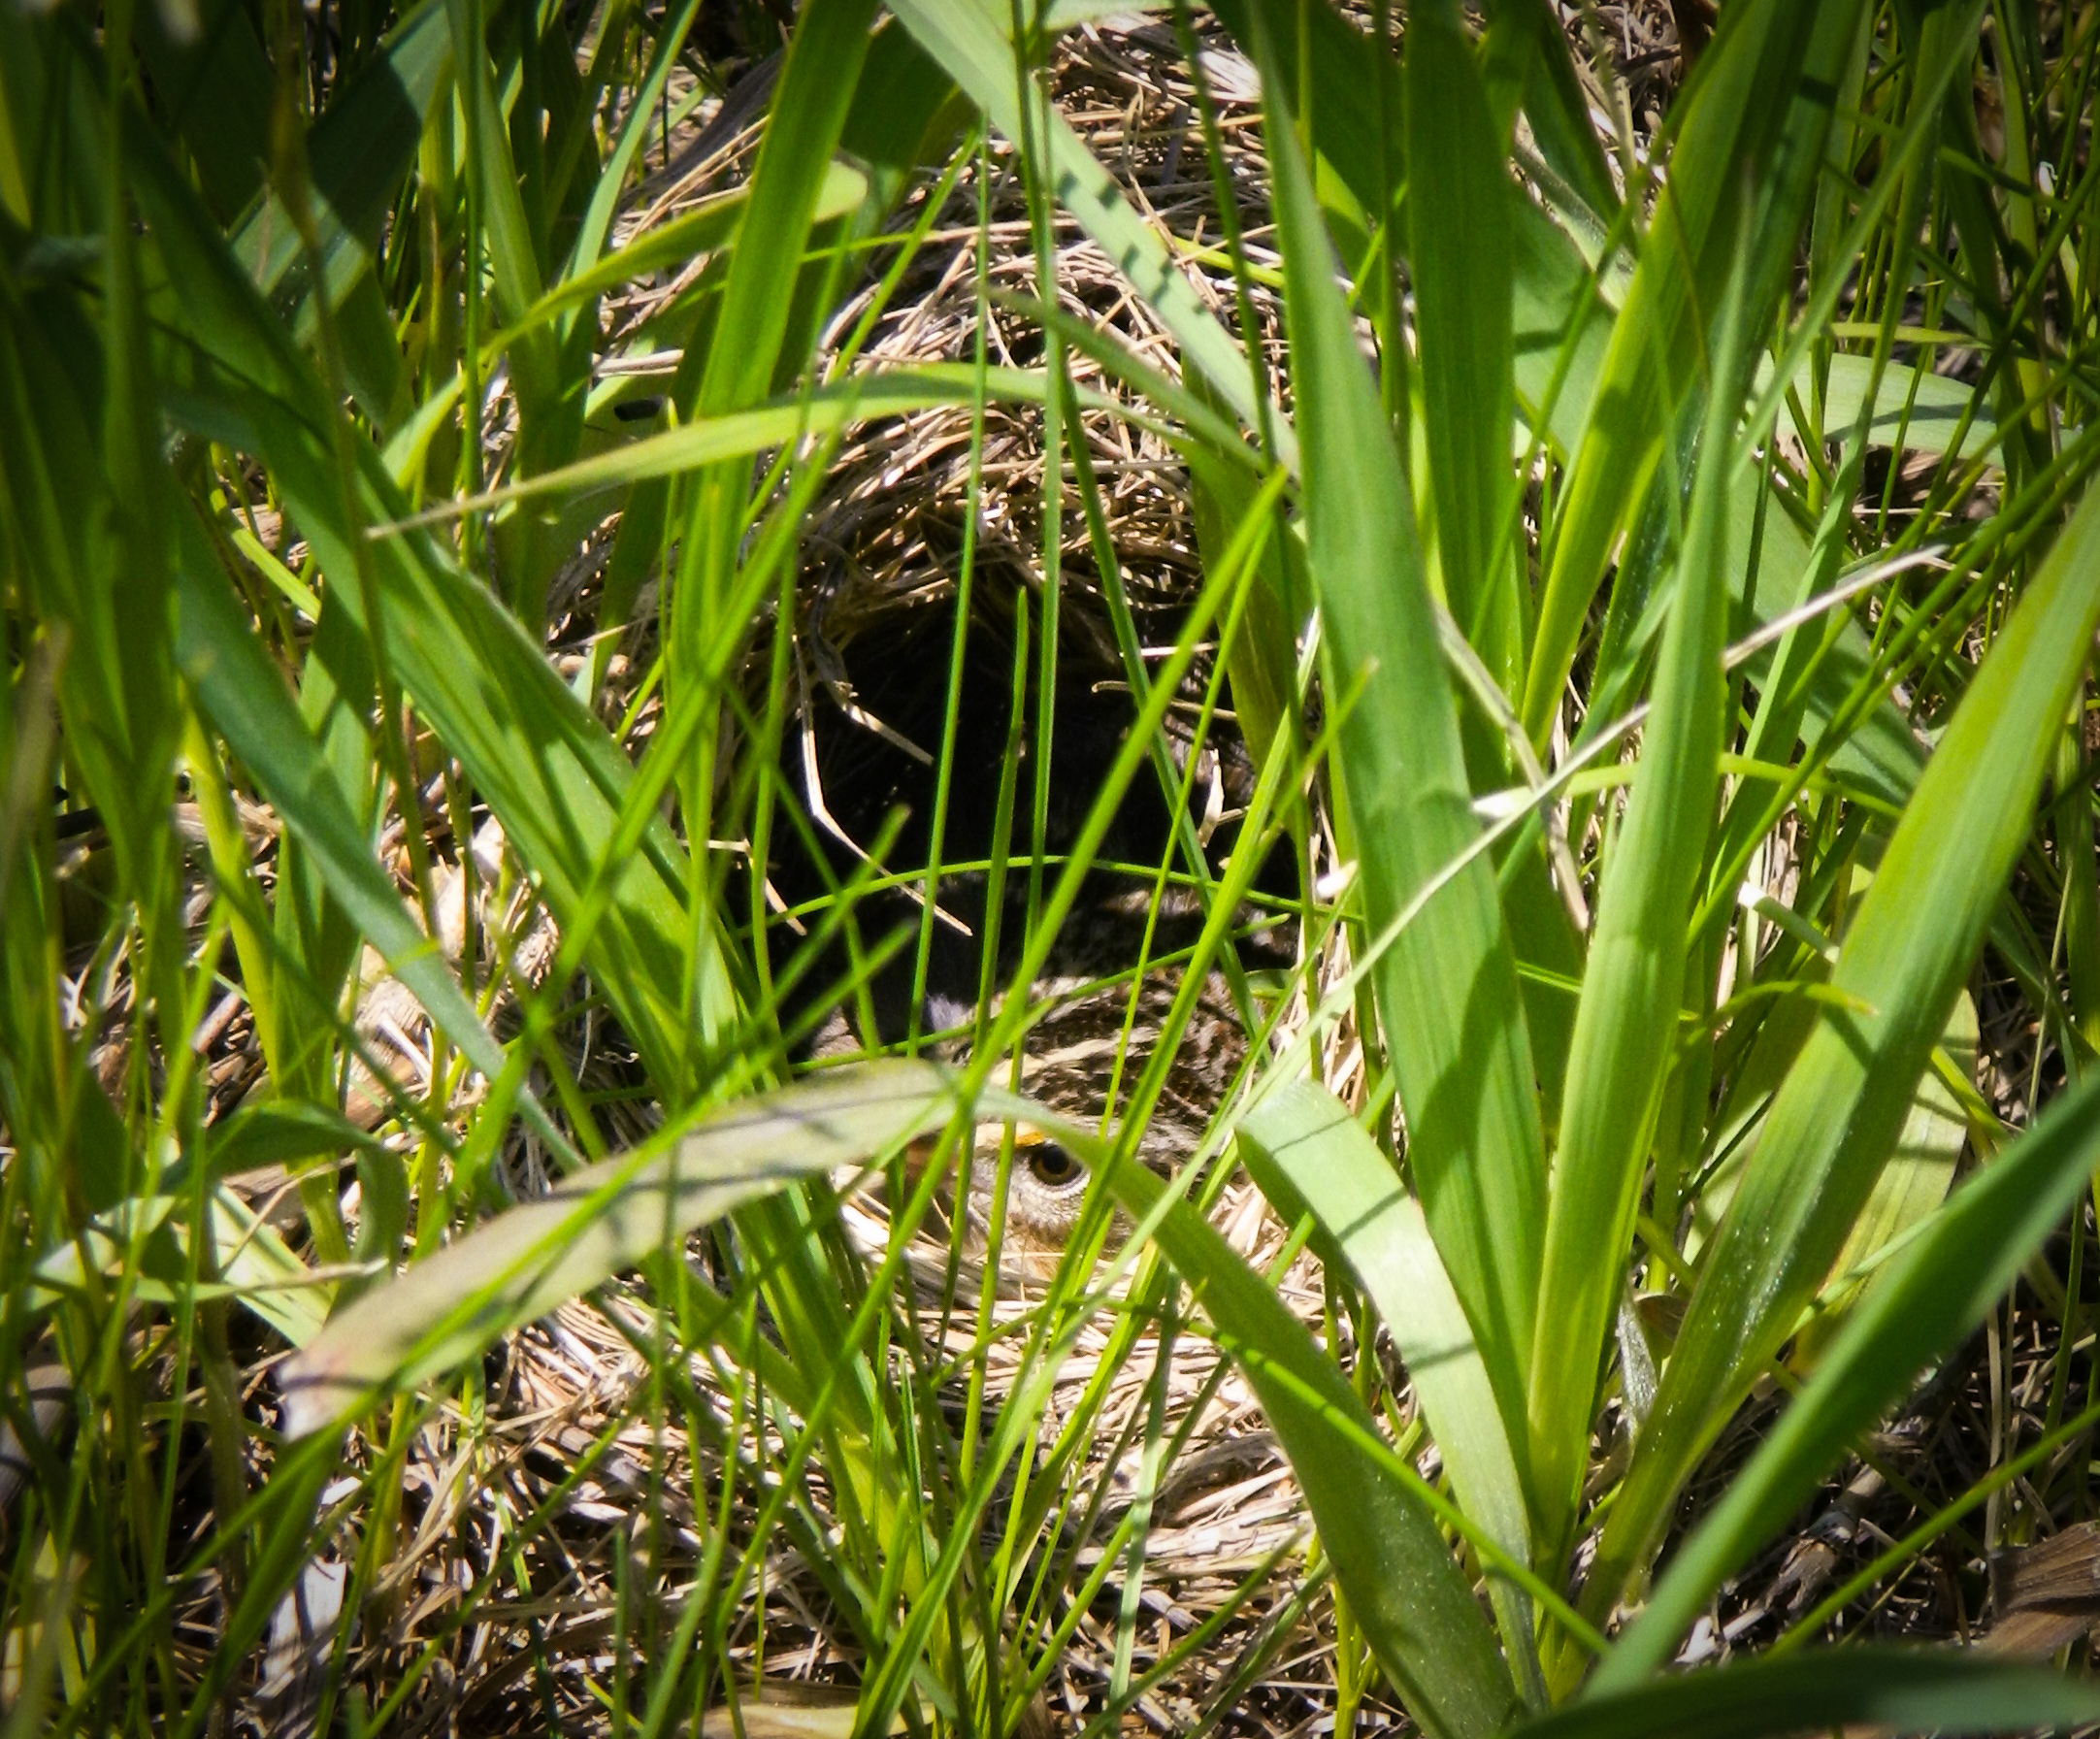 A grasshopper sparrow sits tight on her eggs during a nest check. Can you spot her eye? Everything about this nest and bird is working to keep those eggs camouflaged and safe. Photo by Carolyn Byers